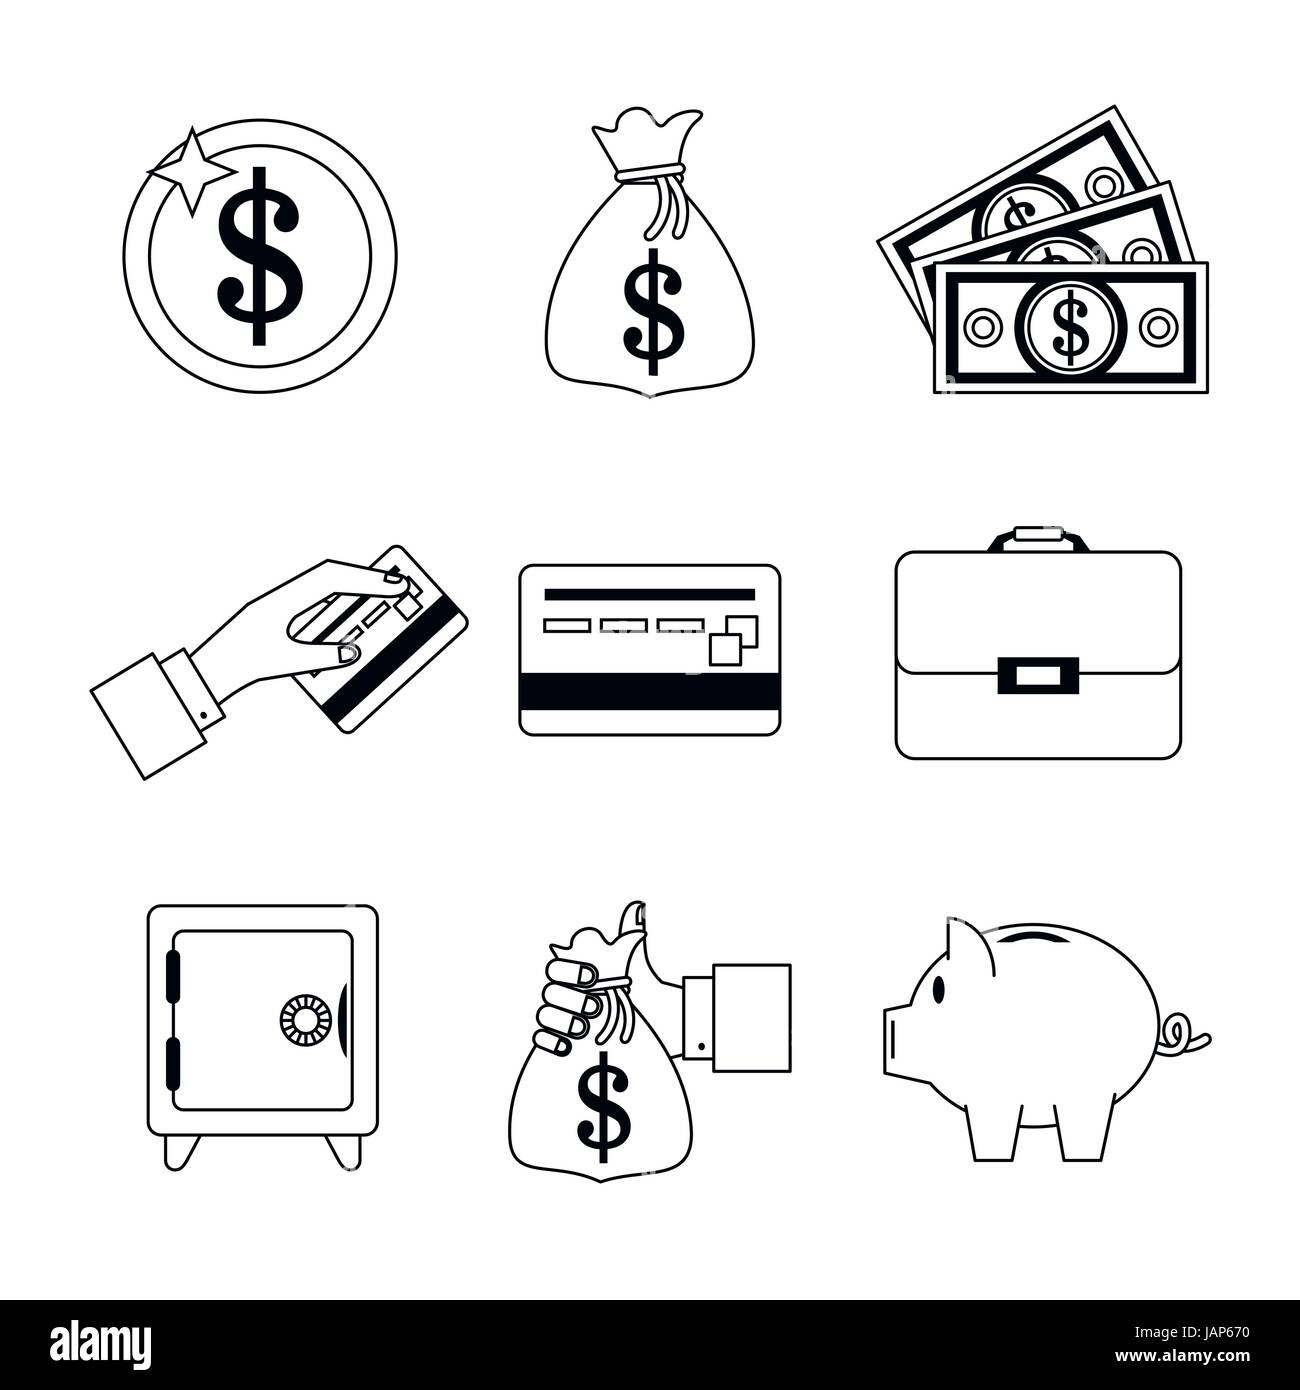 white background with set of monochrome graphics related to money - Stock Image